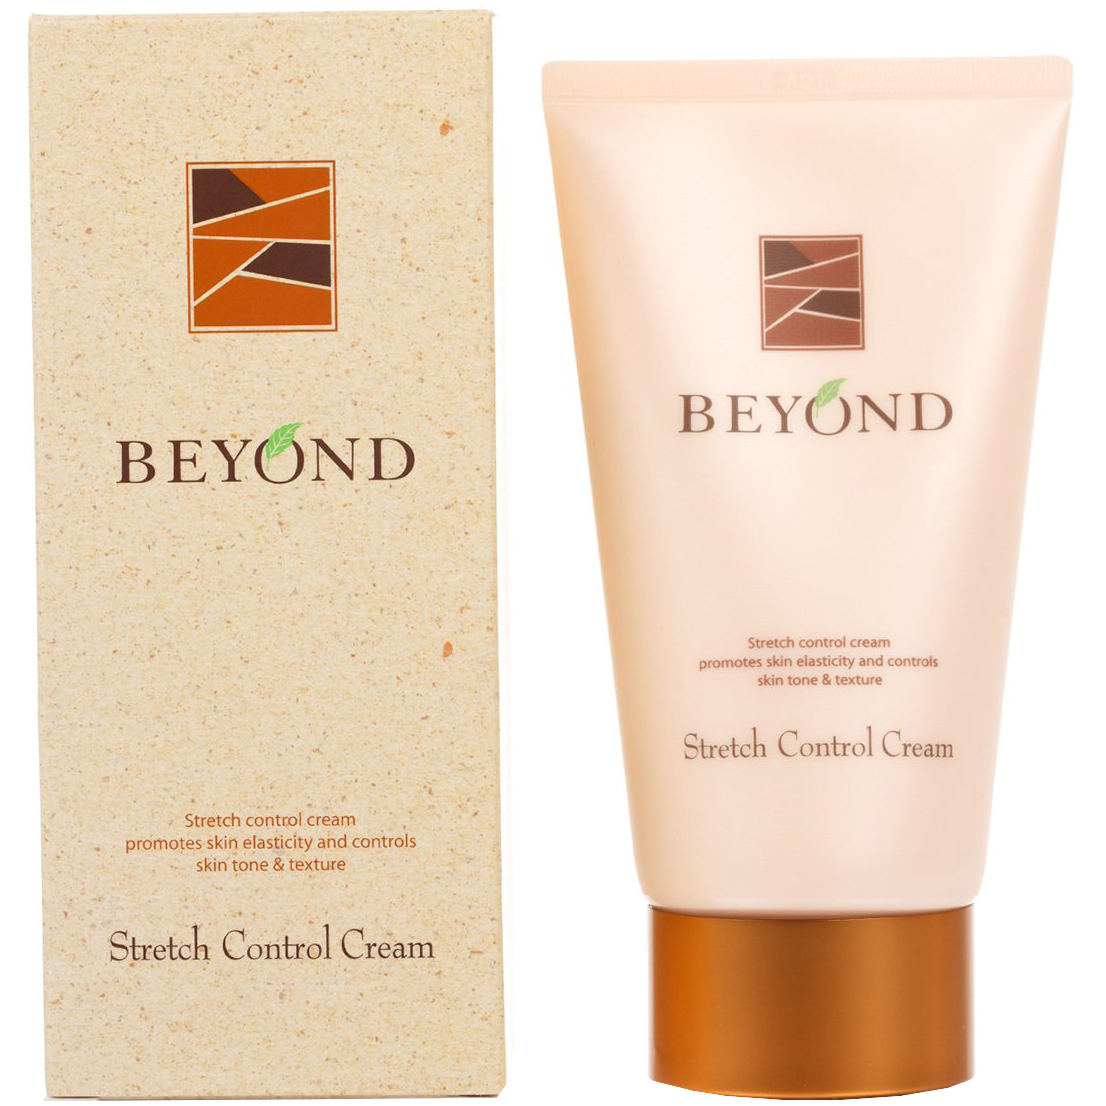 Beyond Крем против растяжек Stretch Control Cream, 130 мл